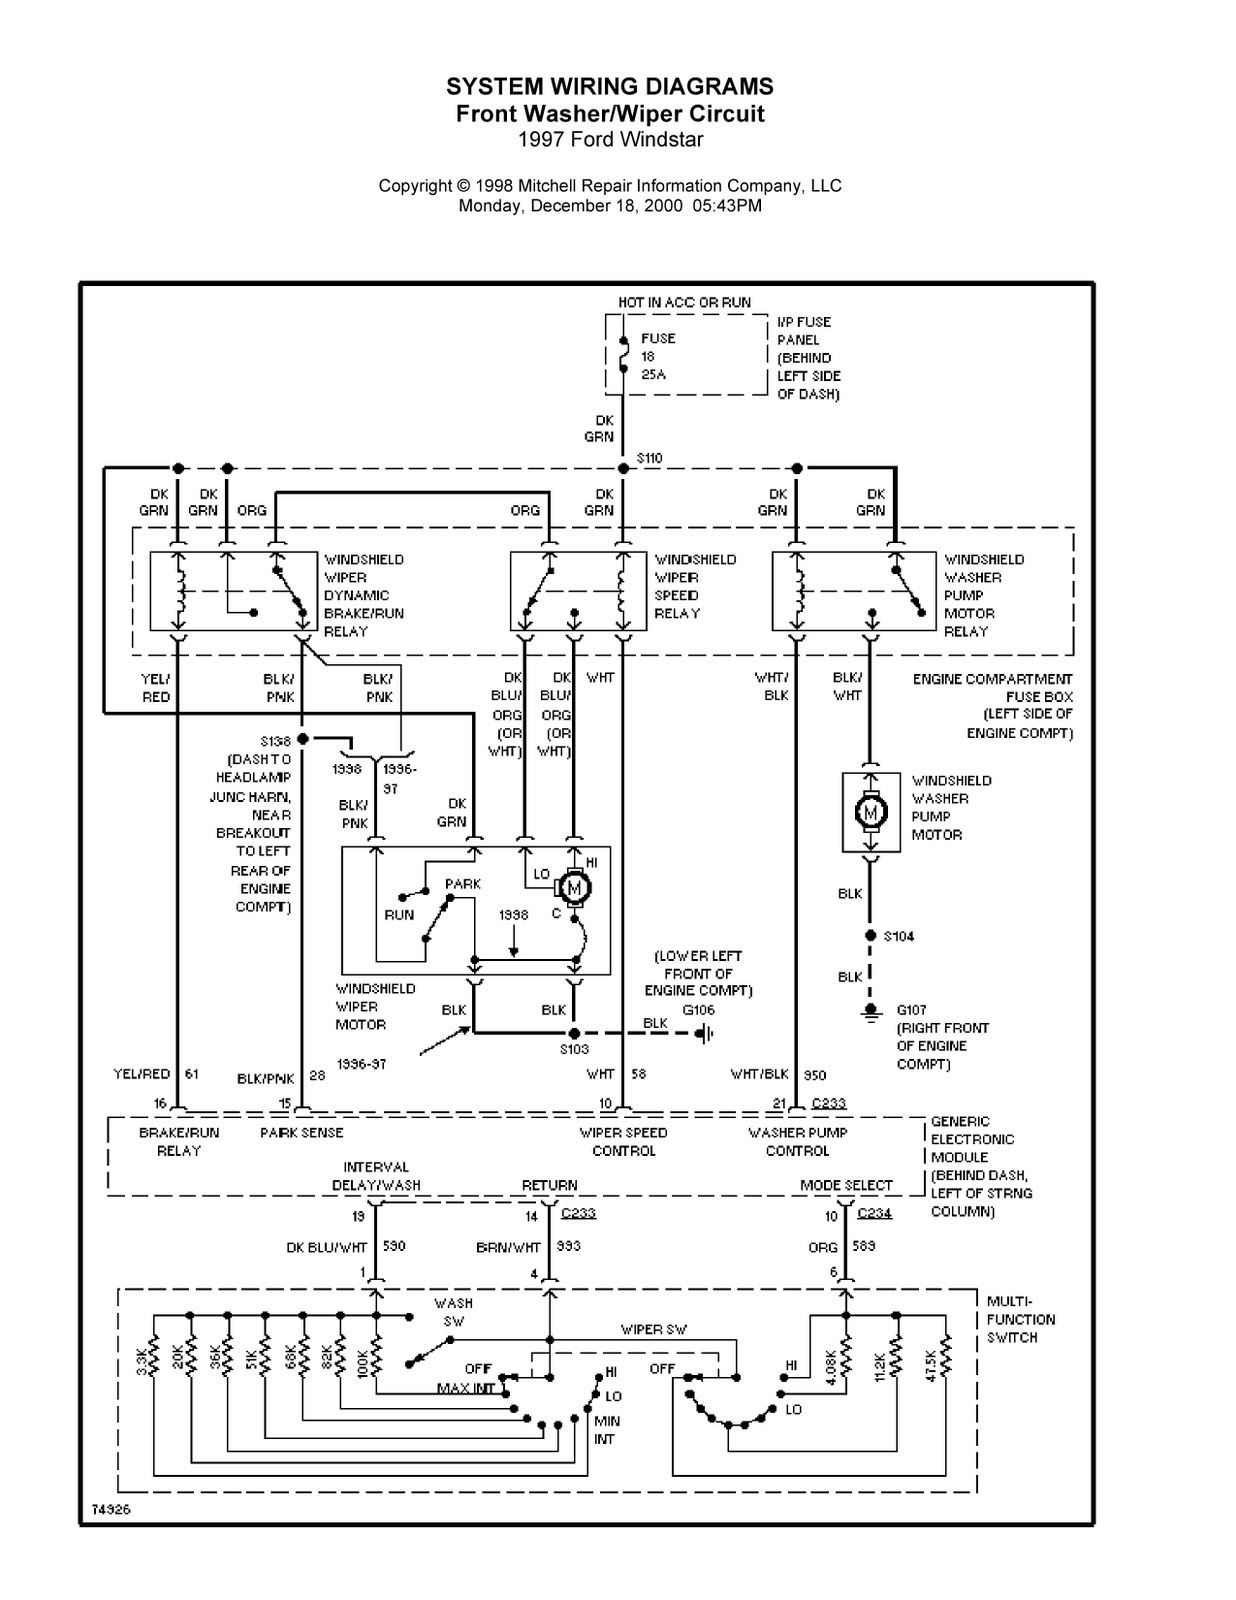 0051 1997 ford windstar complete system wiring diagrams wiring  at webbmarketing.co